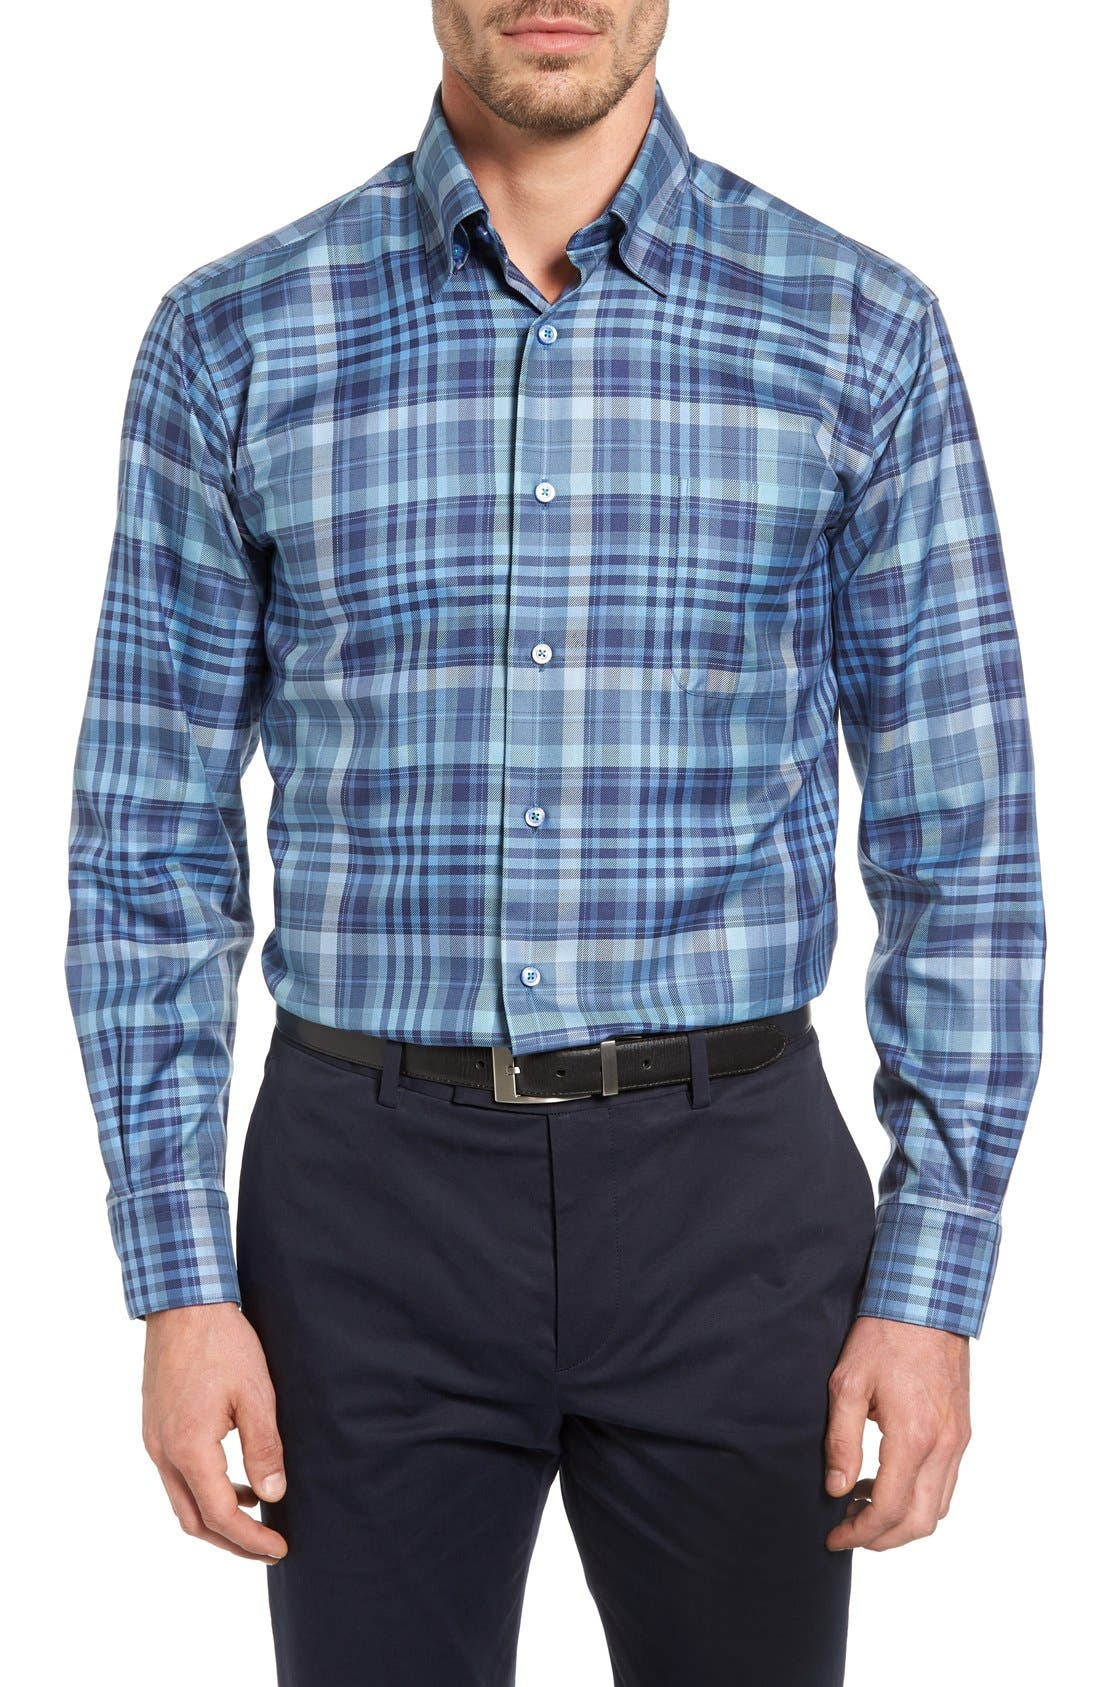 Alternate Image 1 Selected - Robert Talbott 'Anderson' Classic Fit Plaid Sport Shirt